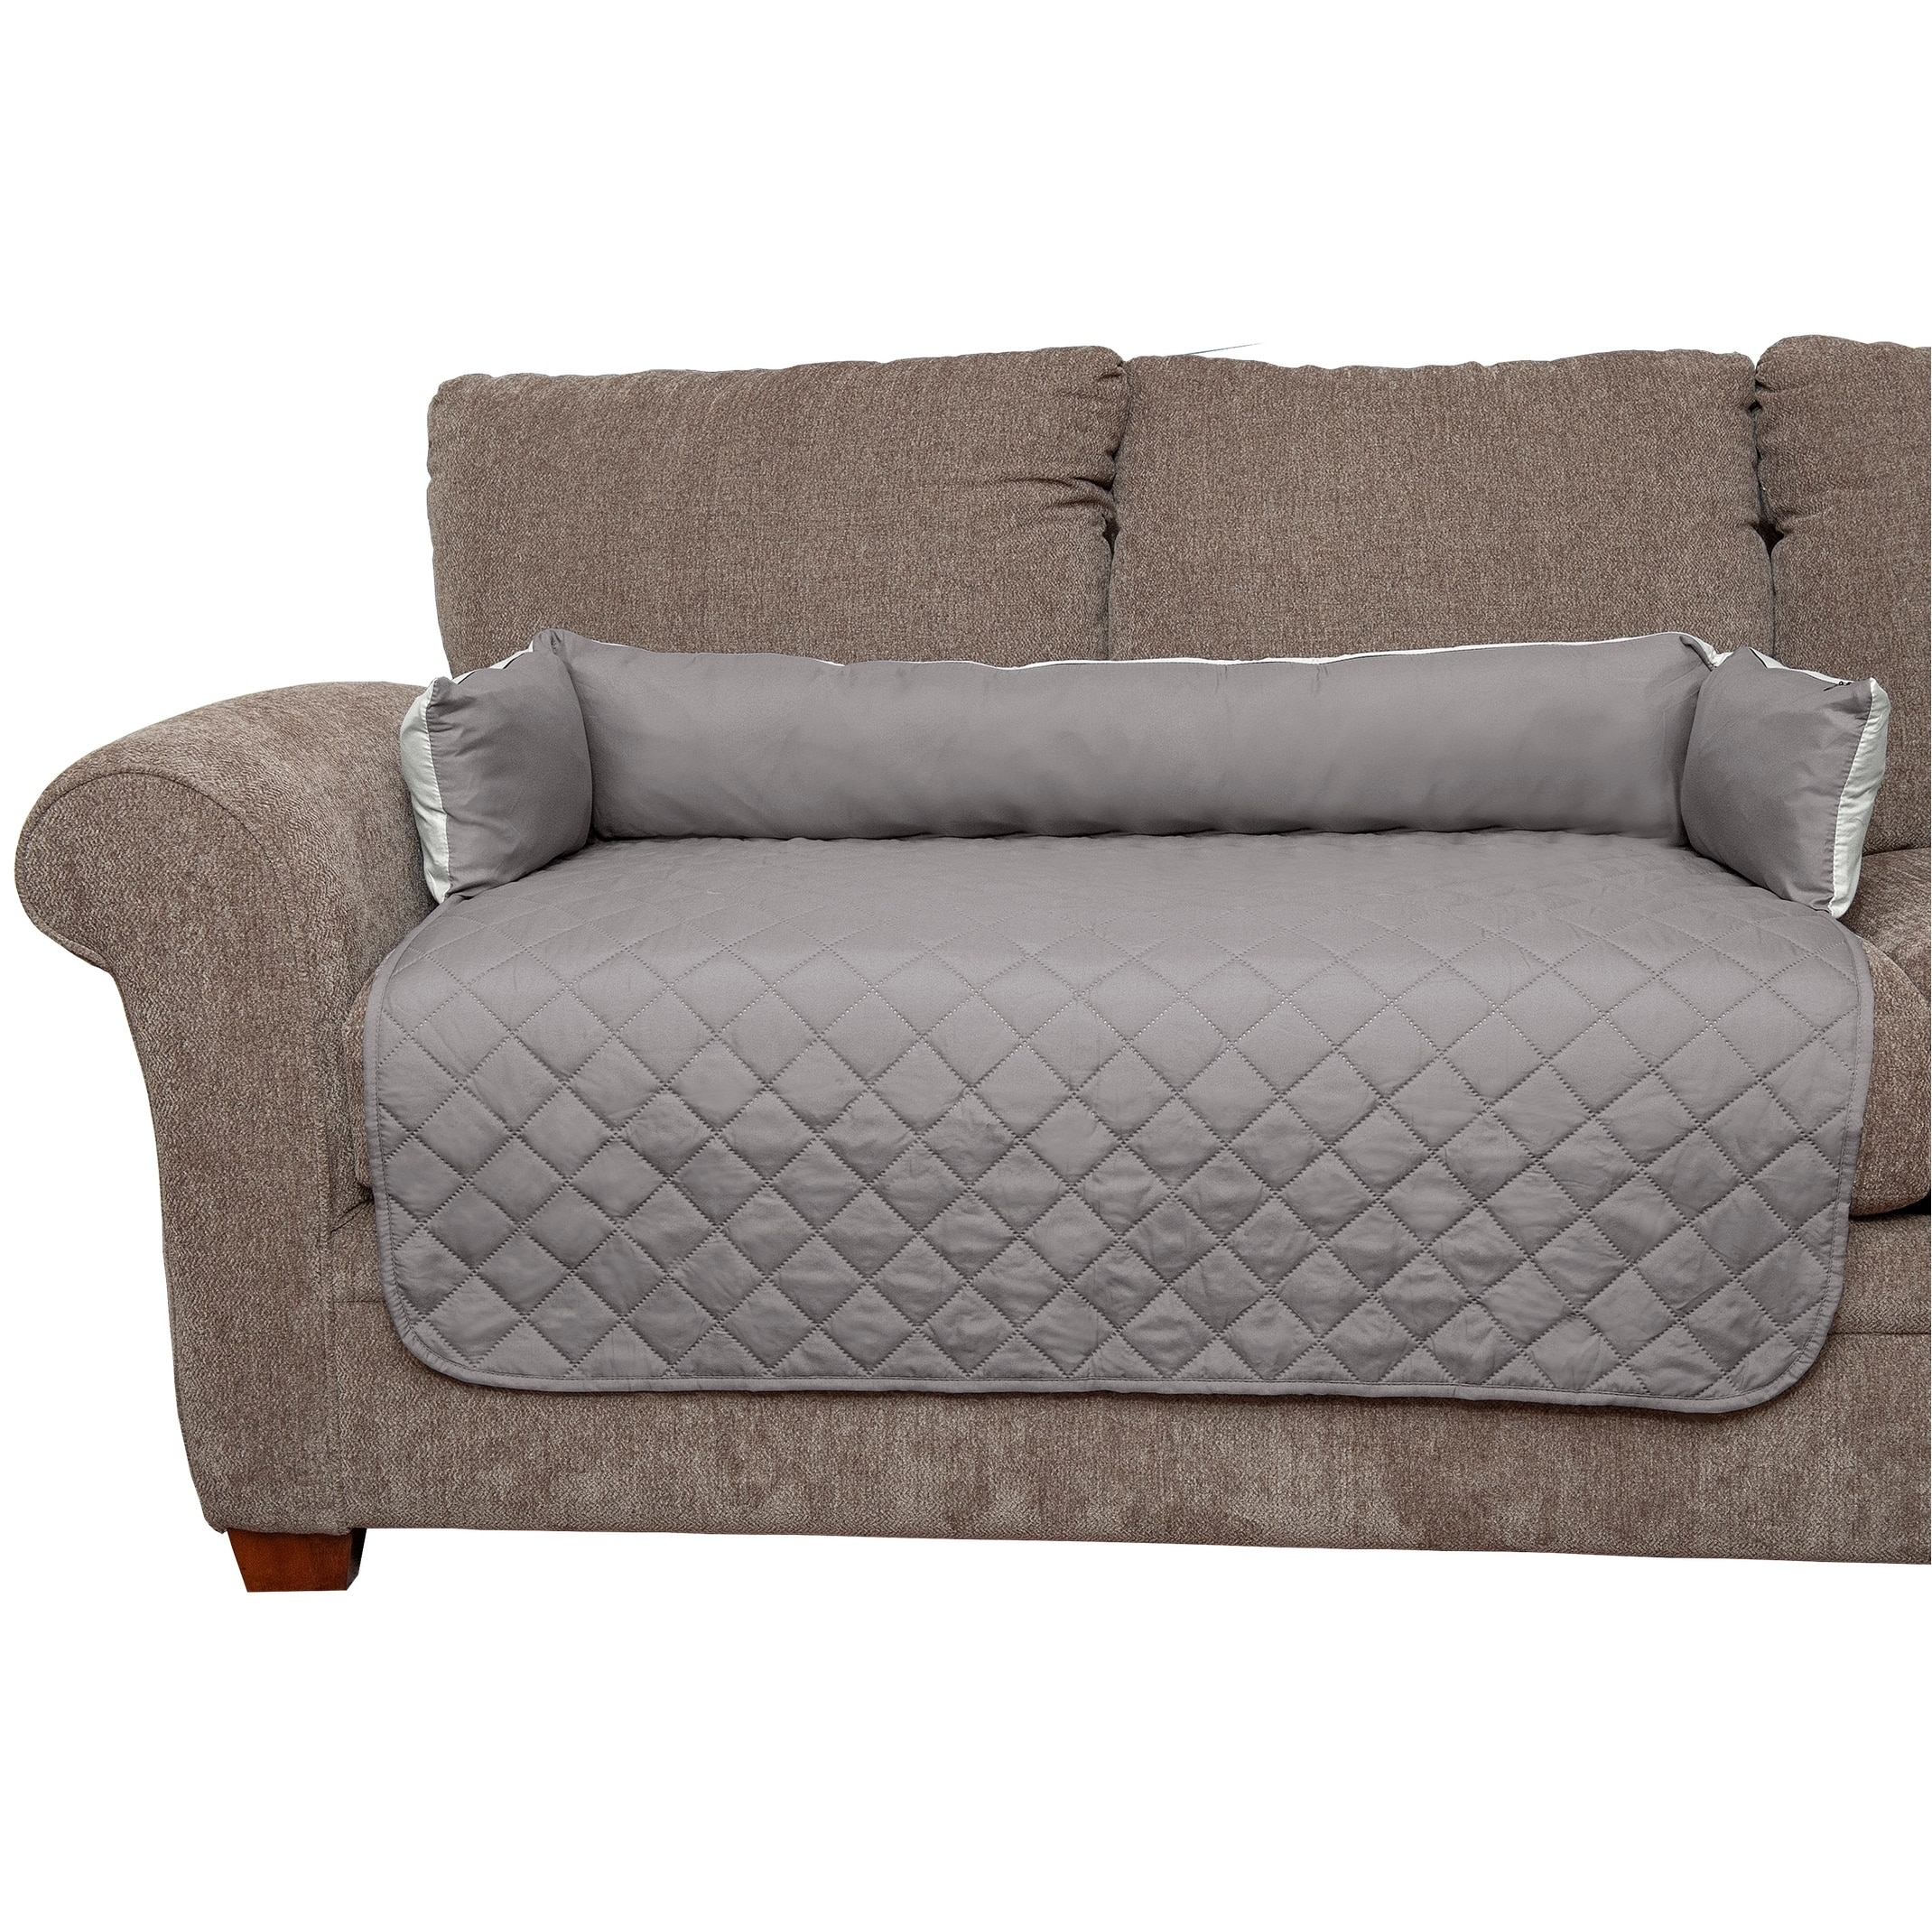 Shop FurHaven Sofa Buddy Pet Bed Furniture Cover - On Sale - Free ...